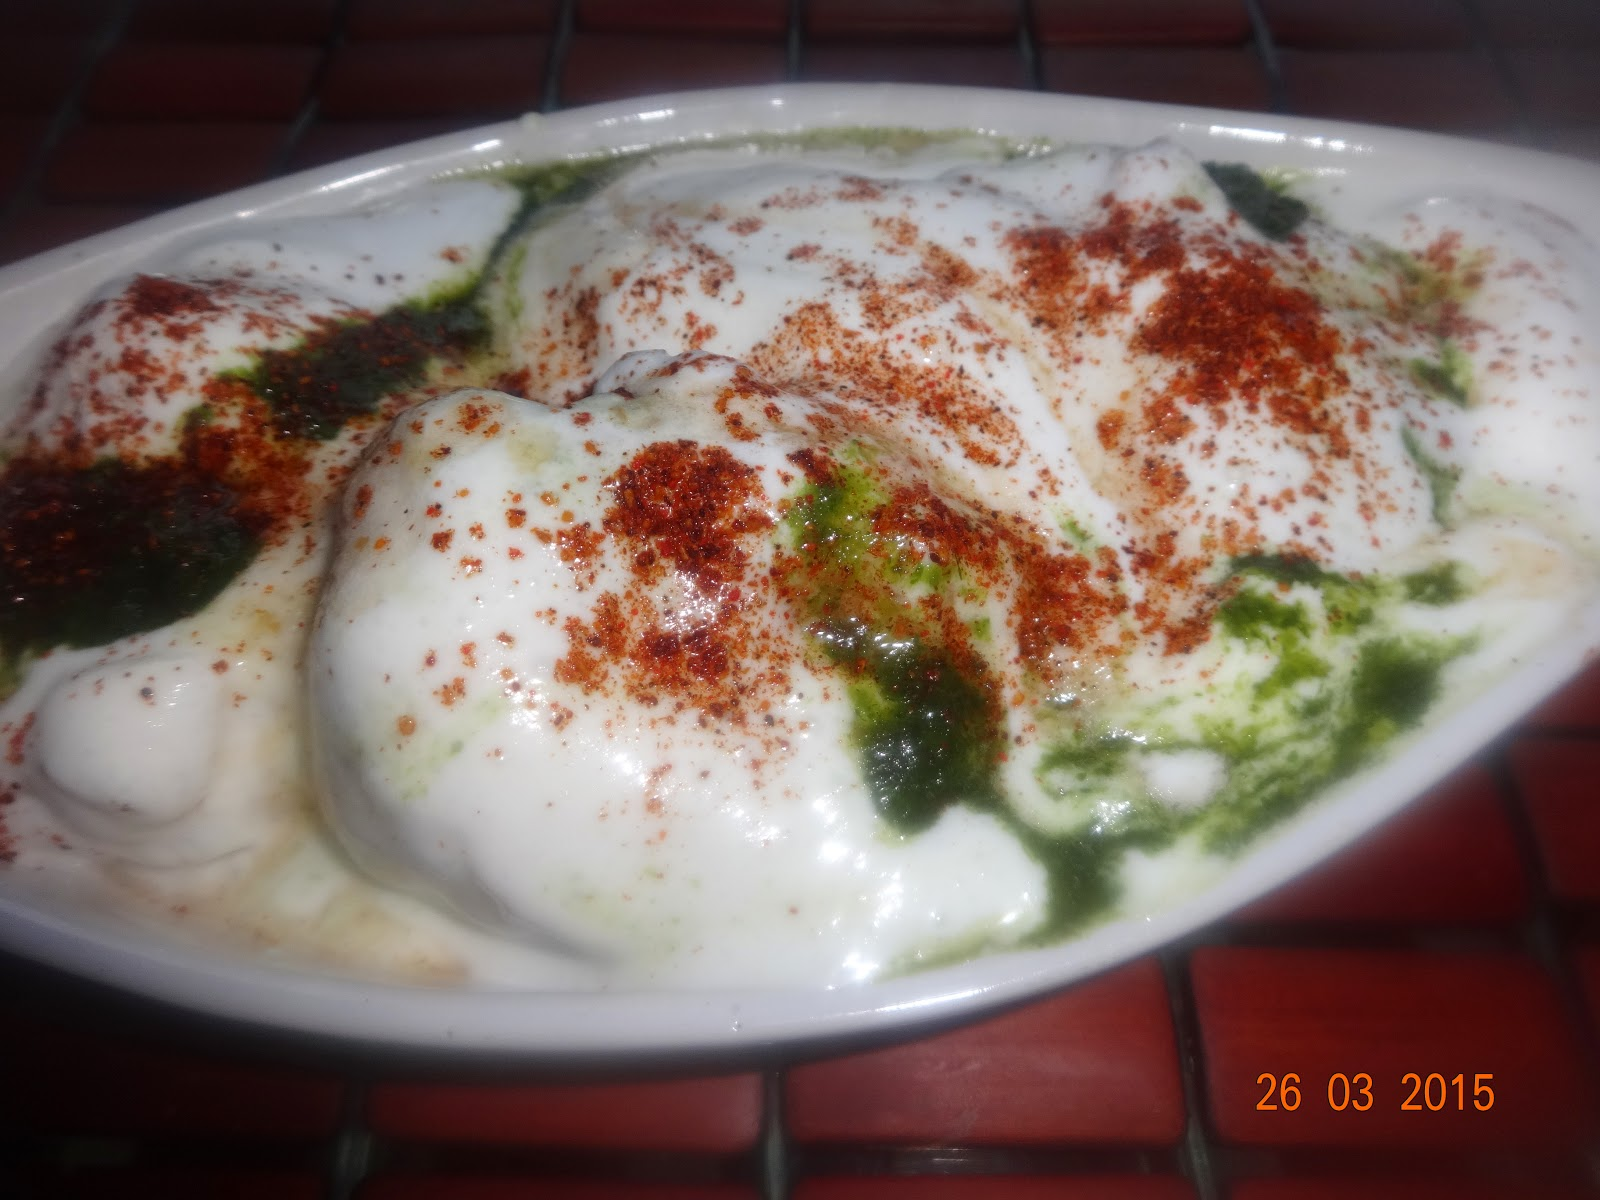 Ice-Creamy Dahi vada (Lentil fritters in rich yoghurt and ic-cream sauce)